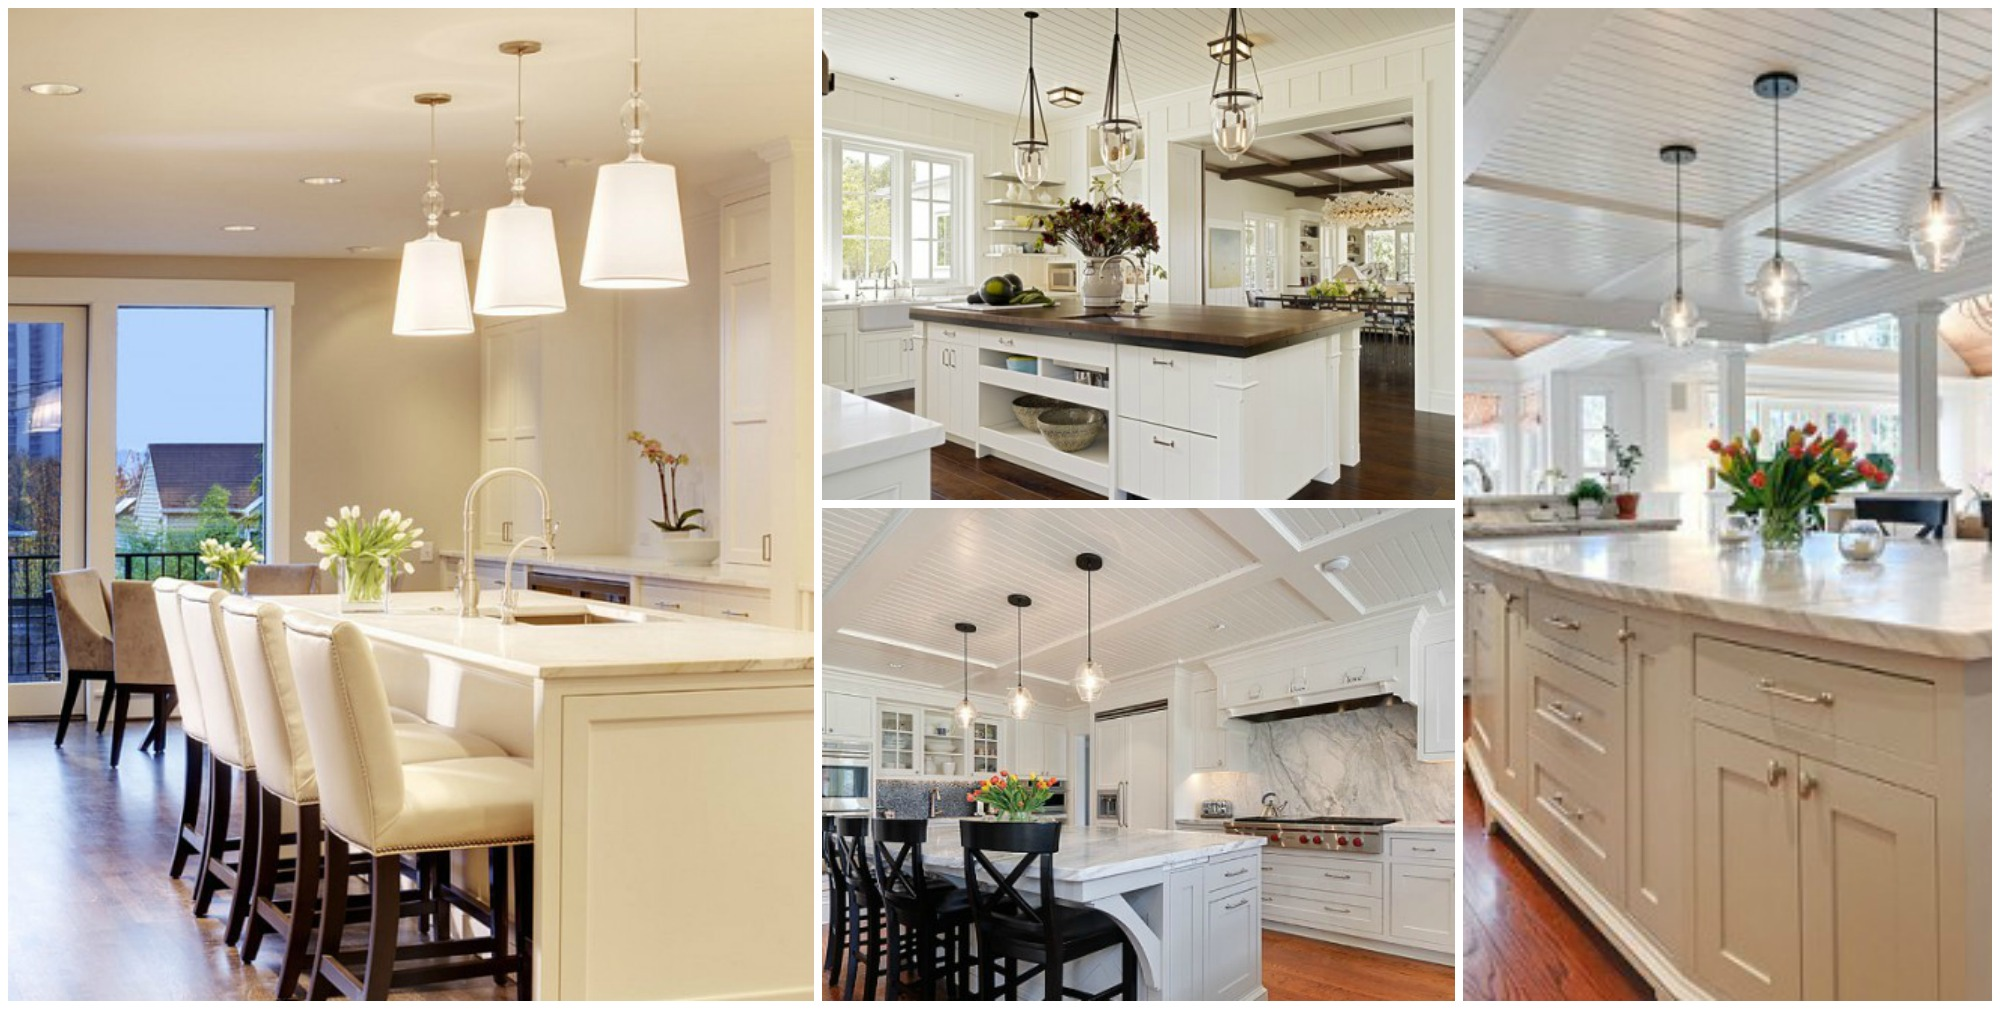 Astonishing Kitchen Island Lighting Ideas You Would Love to See